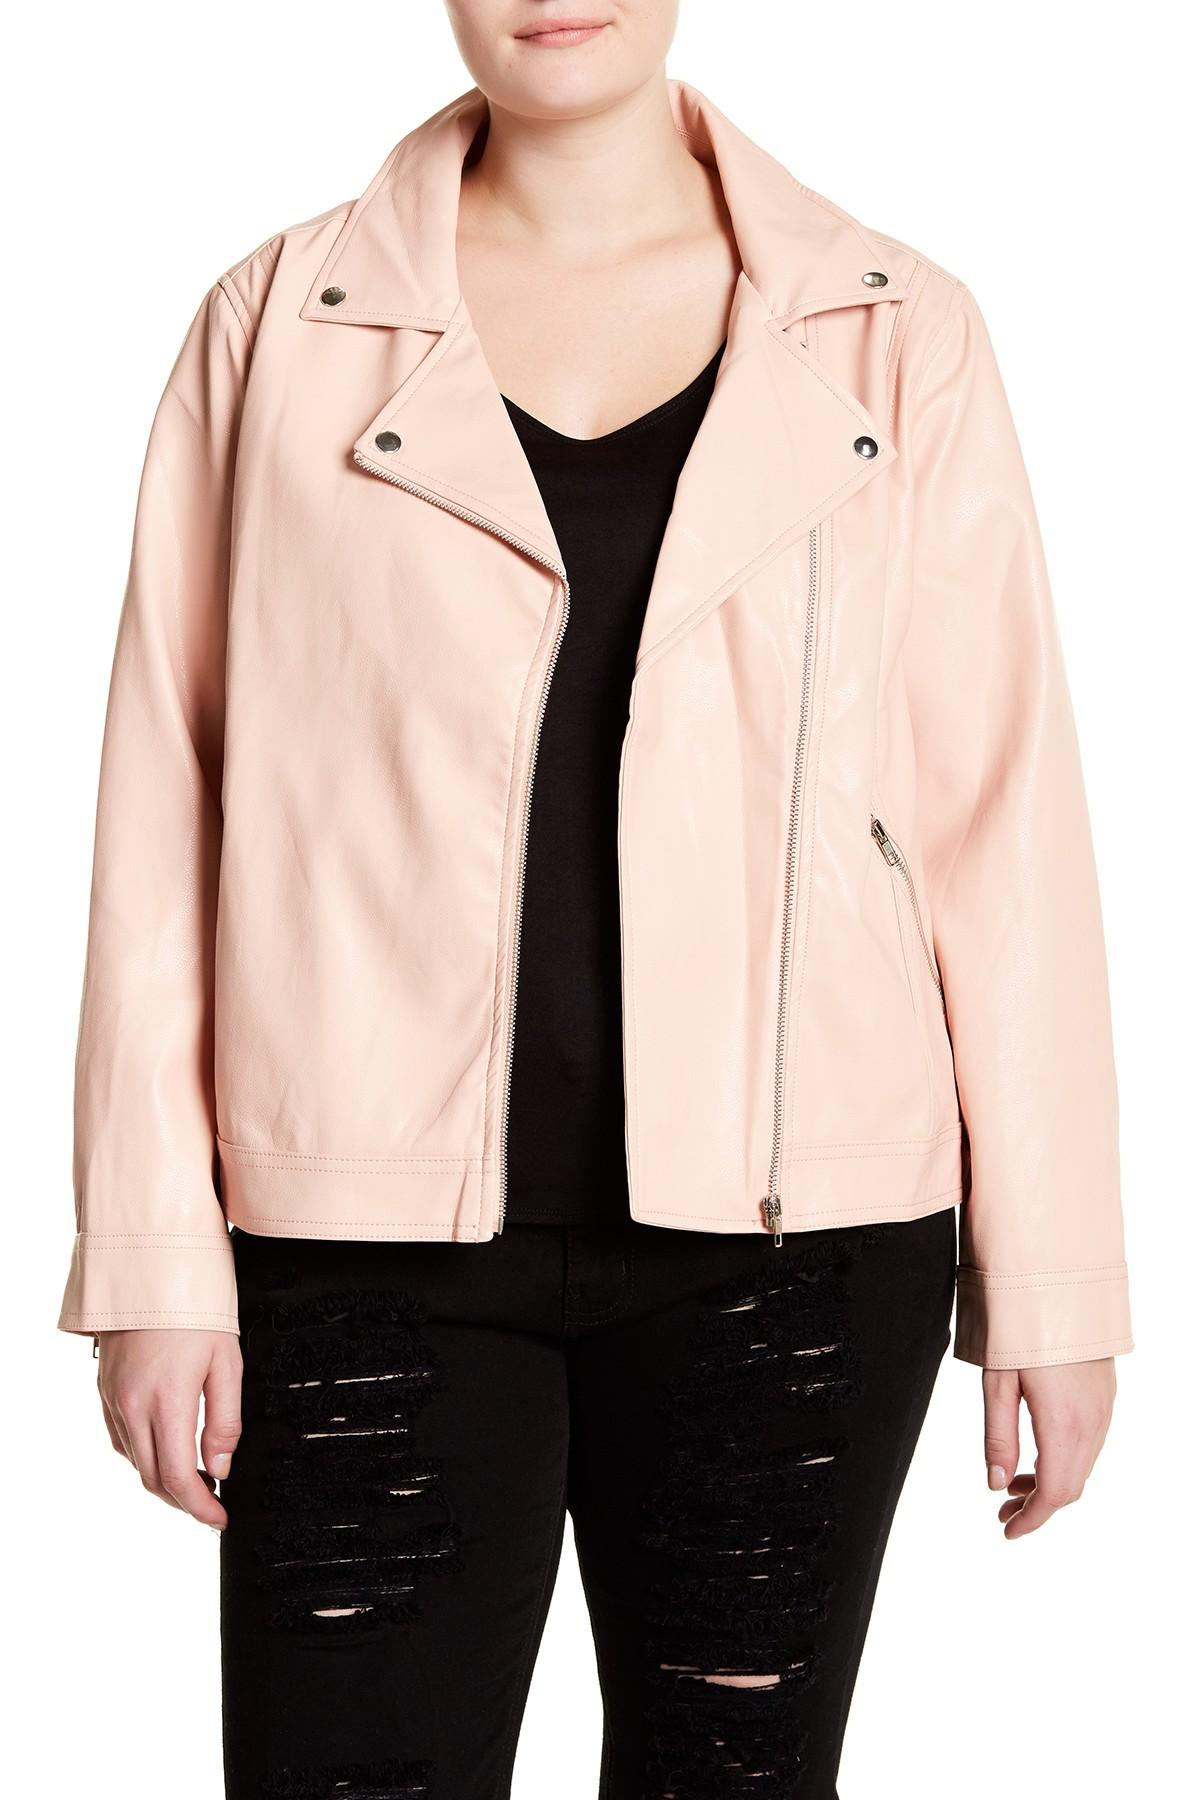 Shop for pink faux leather jacket online at Target. Free shipping on purchases over $35 and save 5% every day with your Target REDcard.